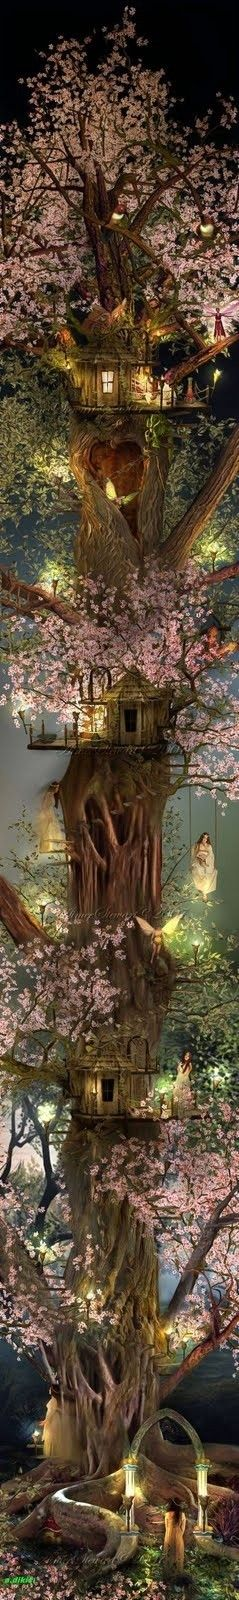 fairy treeFantasy, Fairies Home, Tree Houses, Fairies Trees House, Fairies Gardens, Dreams House, Fairies House, Treehouse, Fairies Tales